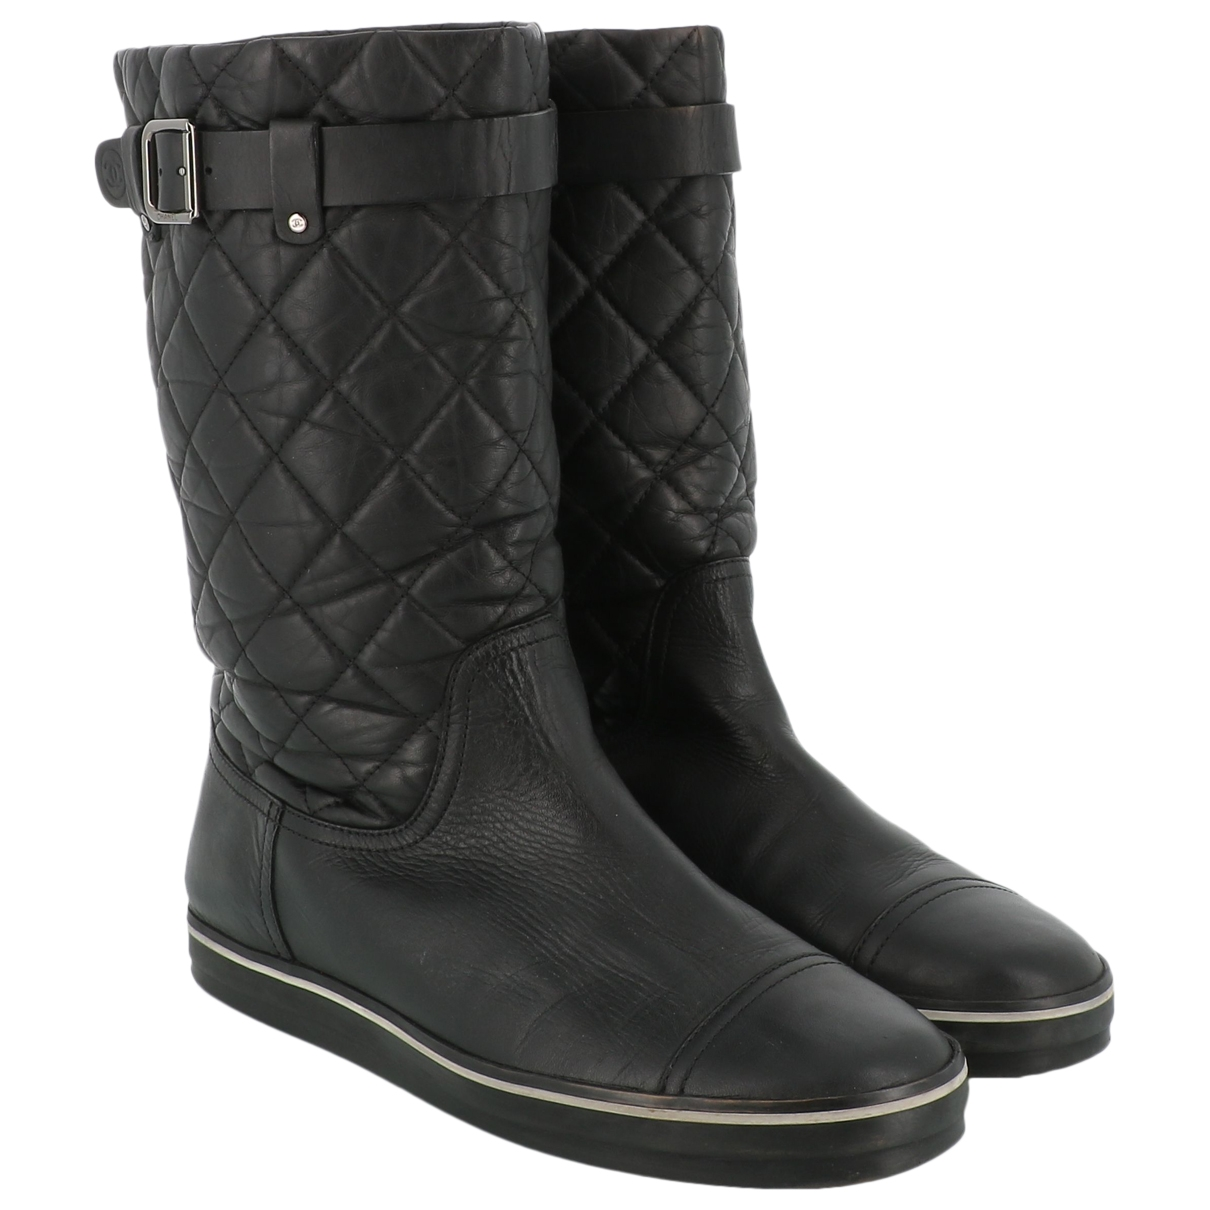 Chanel \N Black Leather Boots for Women 40 EU